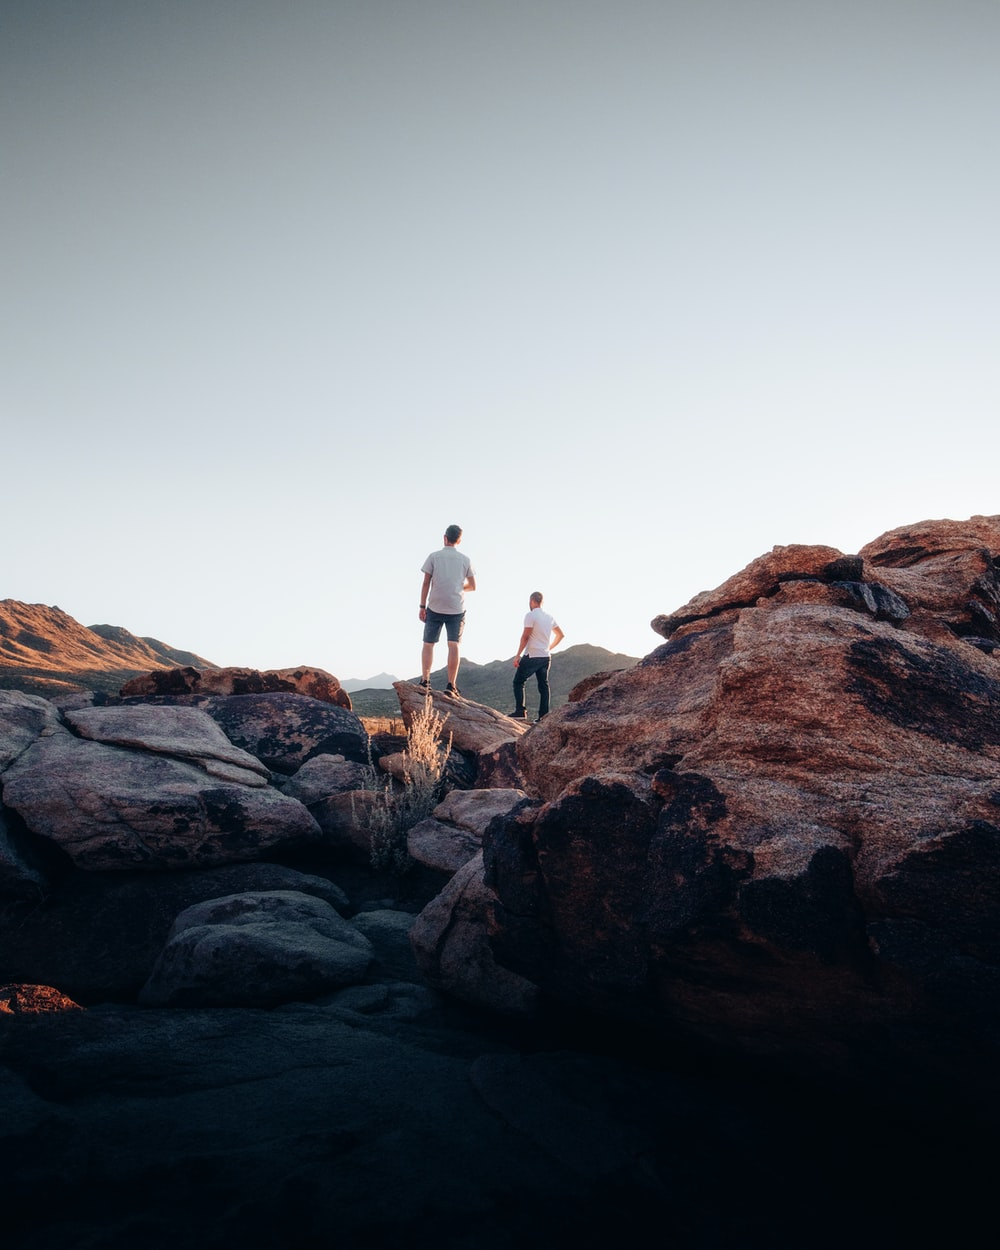 man and woman standing on brown rock formation during daytime